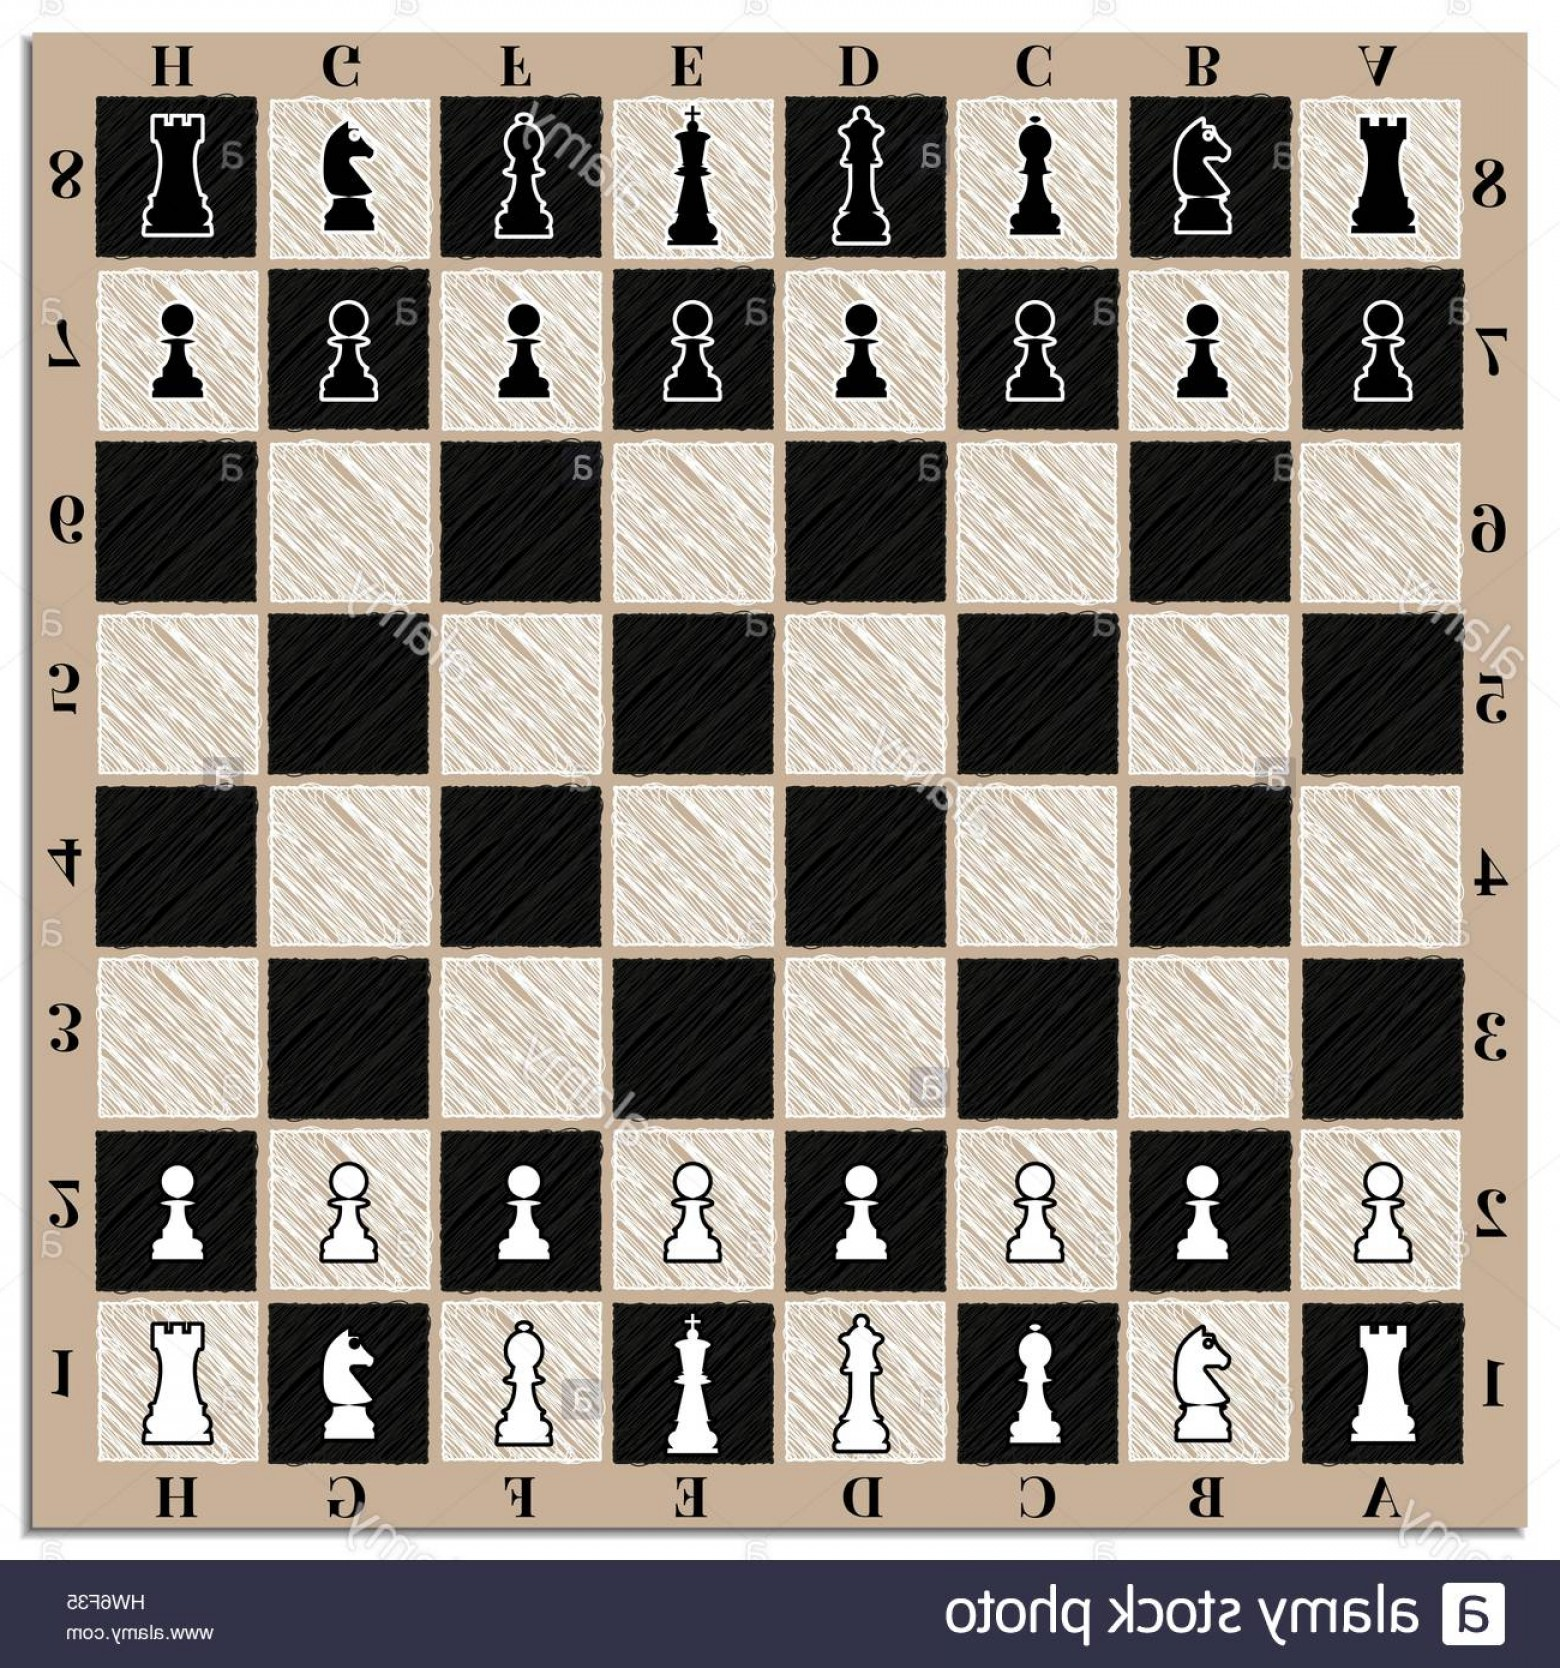 Vector Chess Board: Stock Photo Chessboard With Chess Figures And Marking Vector Illustration